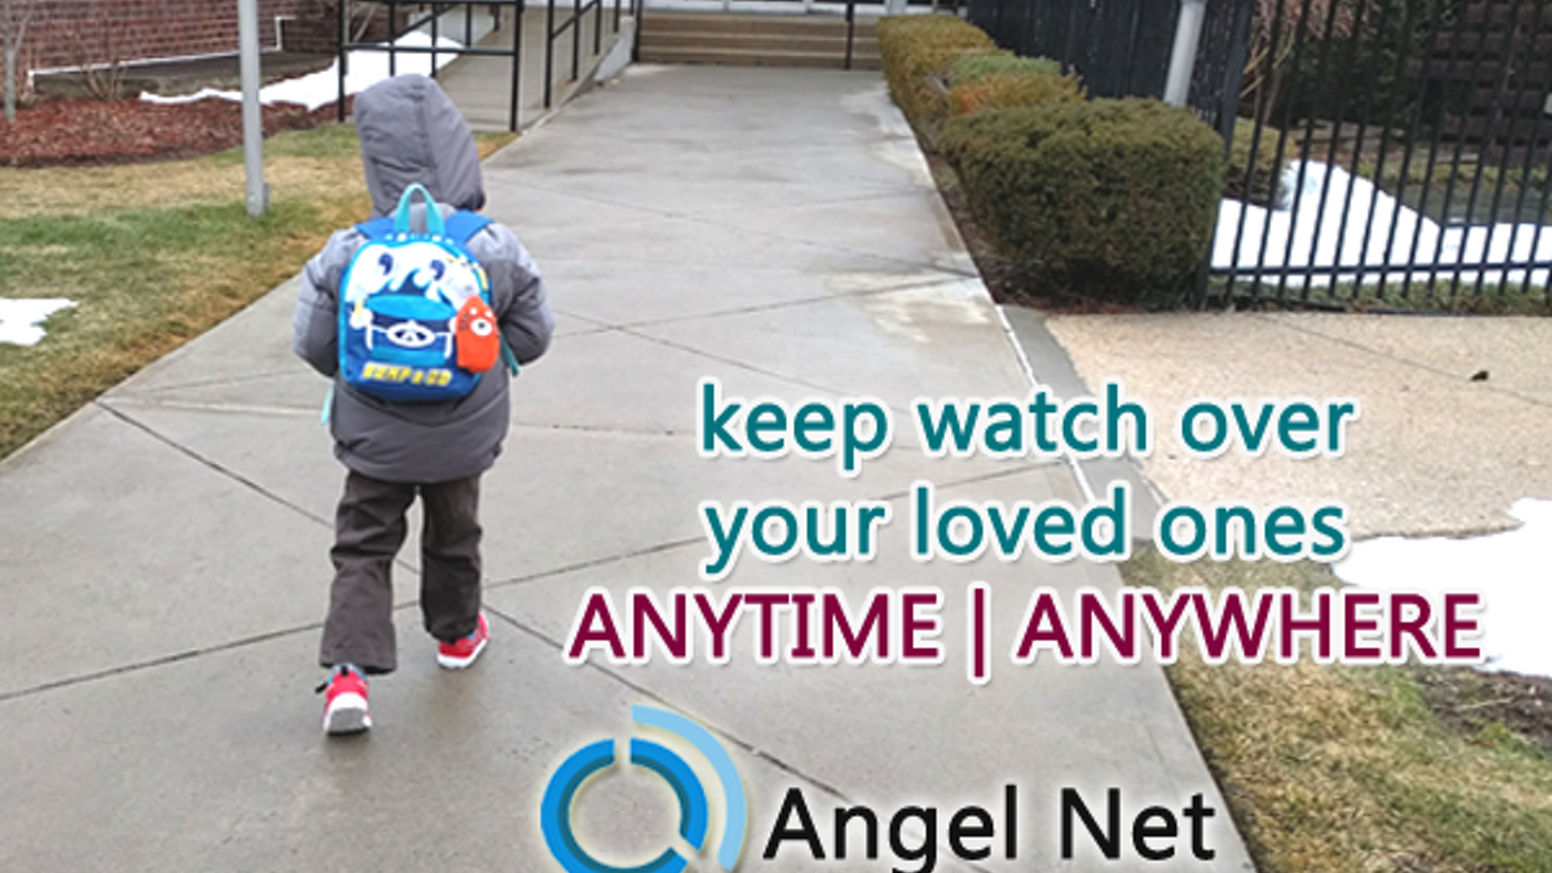 Watch over loved ones affected by Autism or Alzheimer's. GPS & temperature sensors + apps let you know where and how they are 24/7.